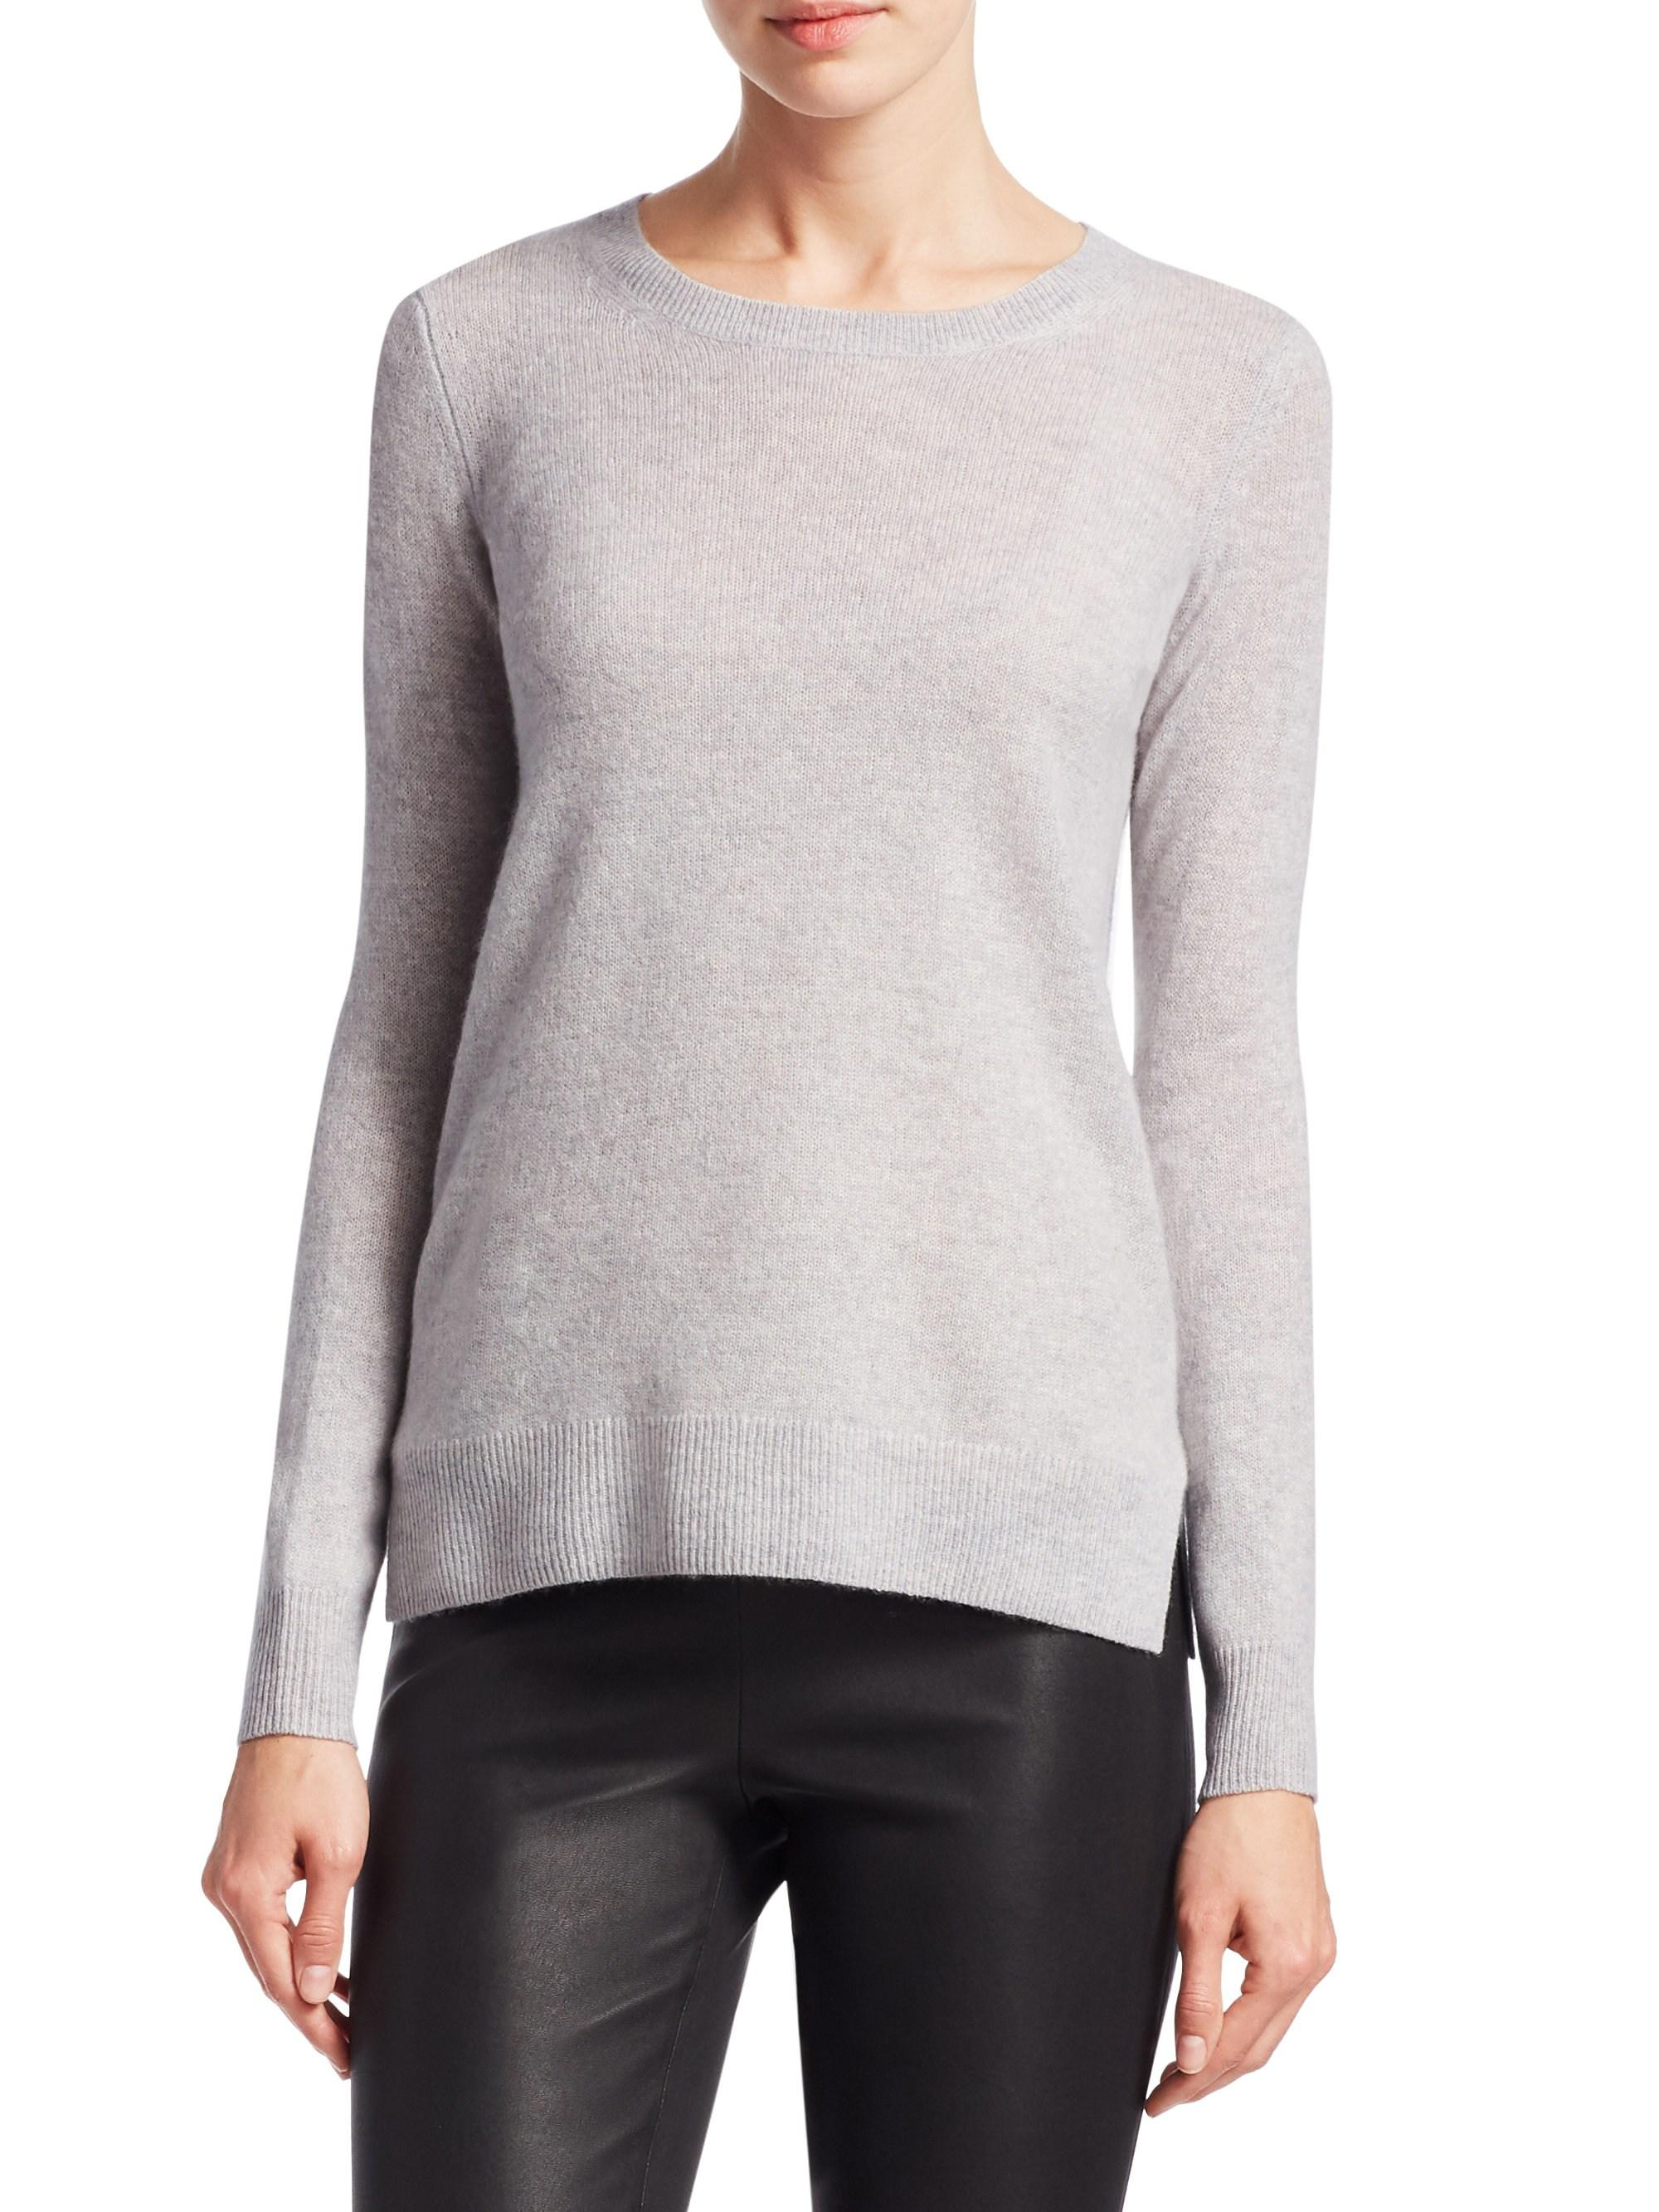 b17c44e237 Gallery. Previously sold at  Saks Fifth Avenue · Women s Layered Sweaters  ...